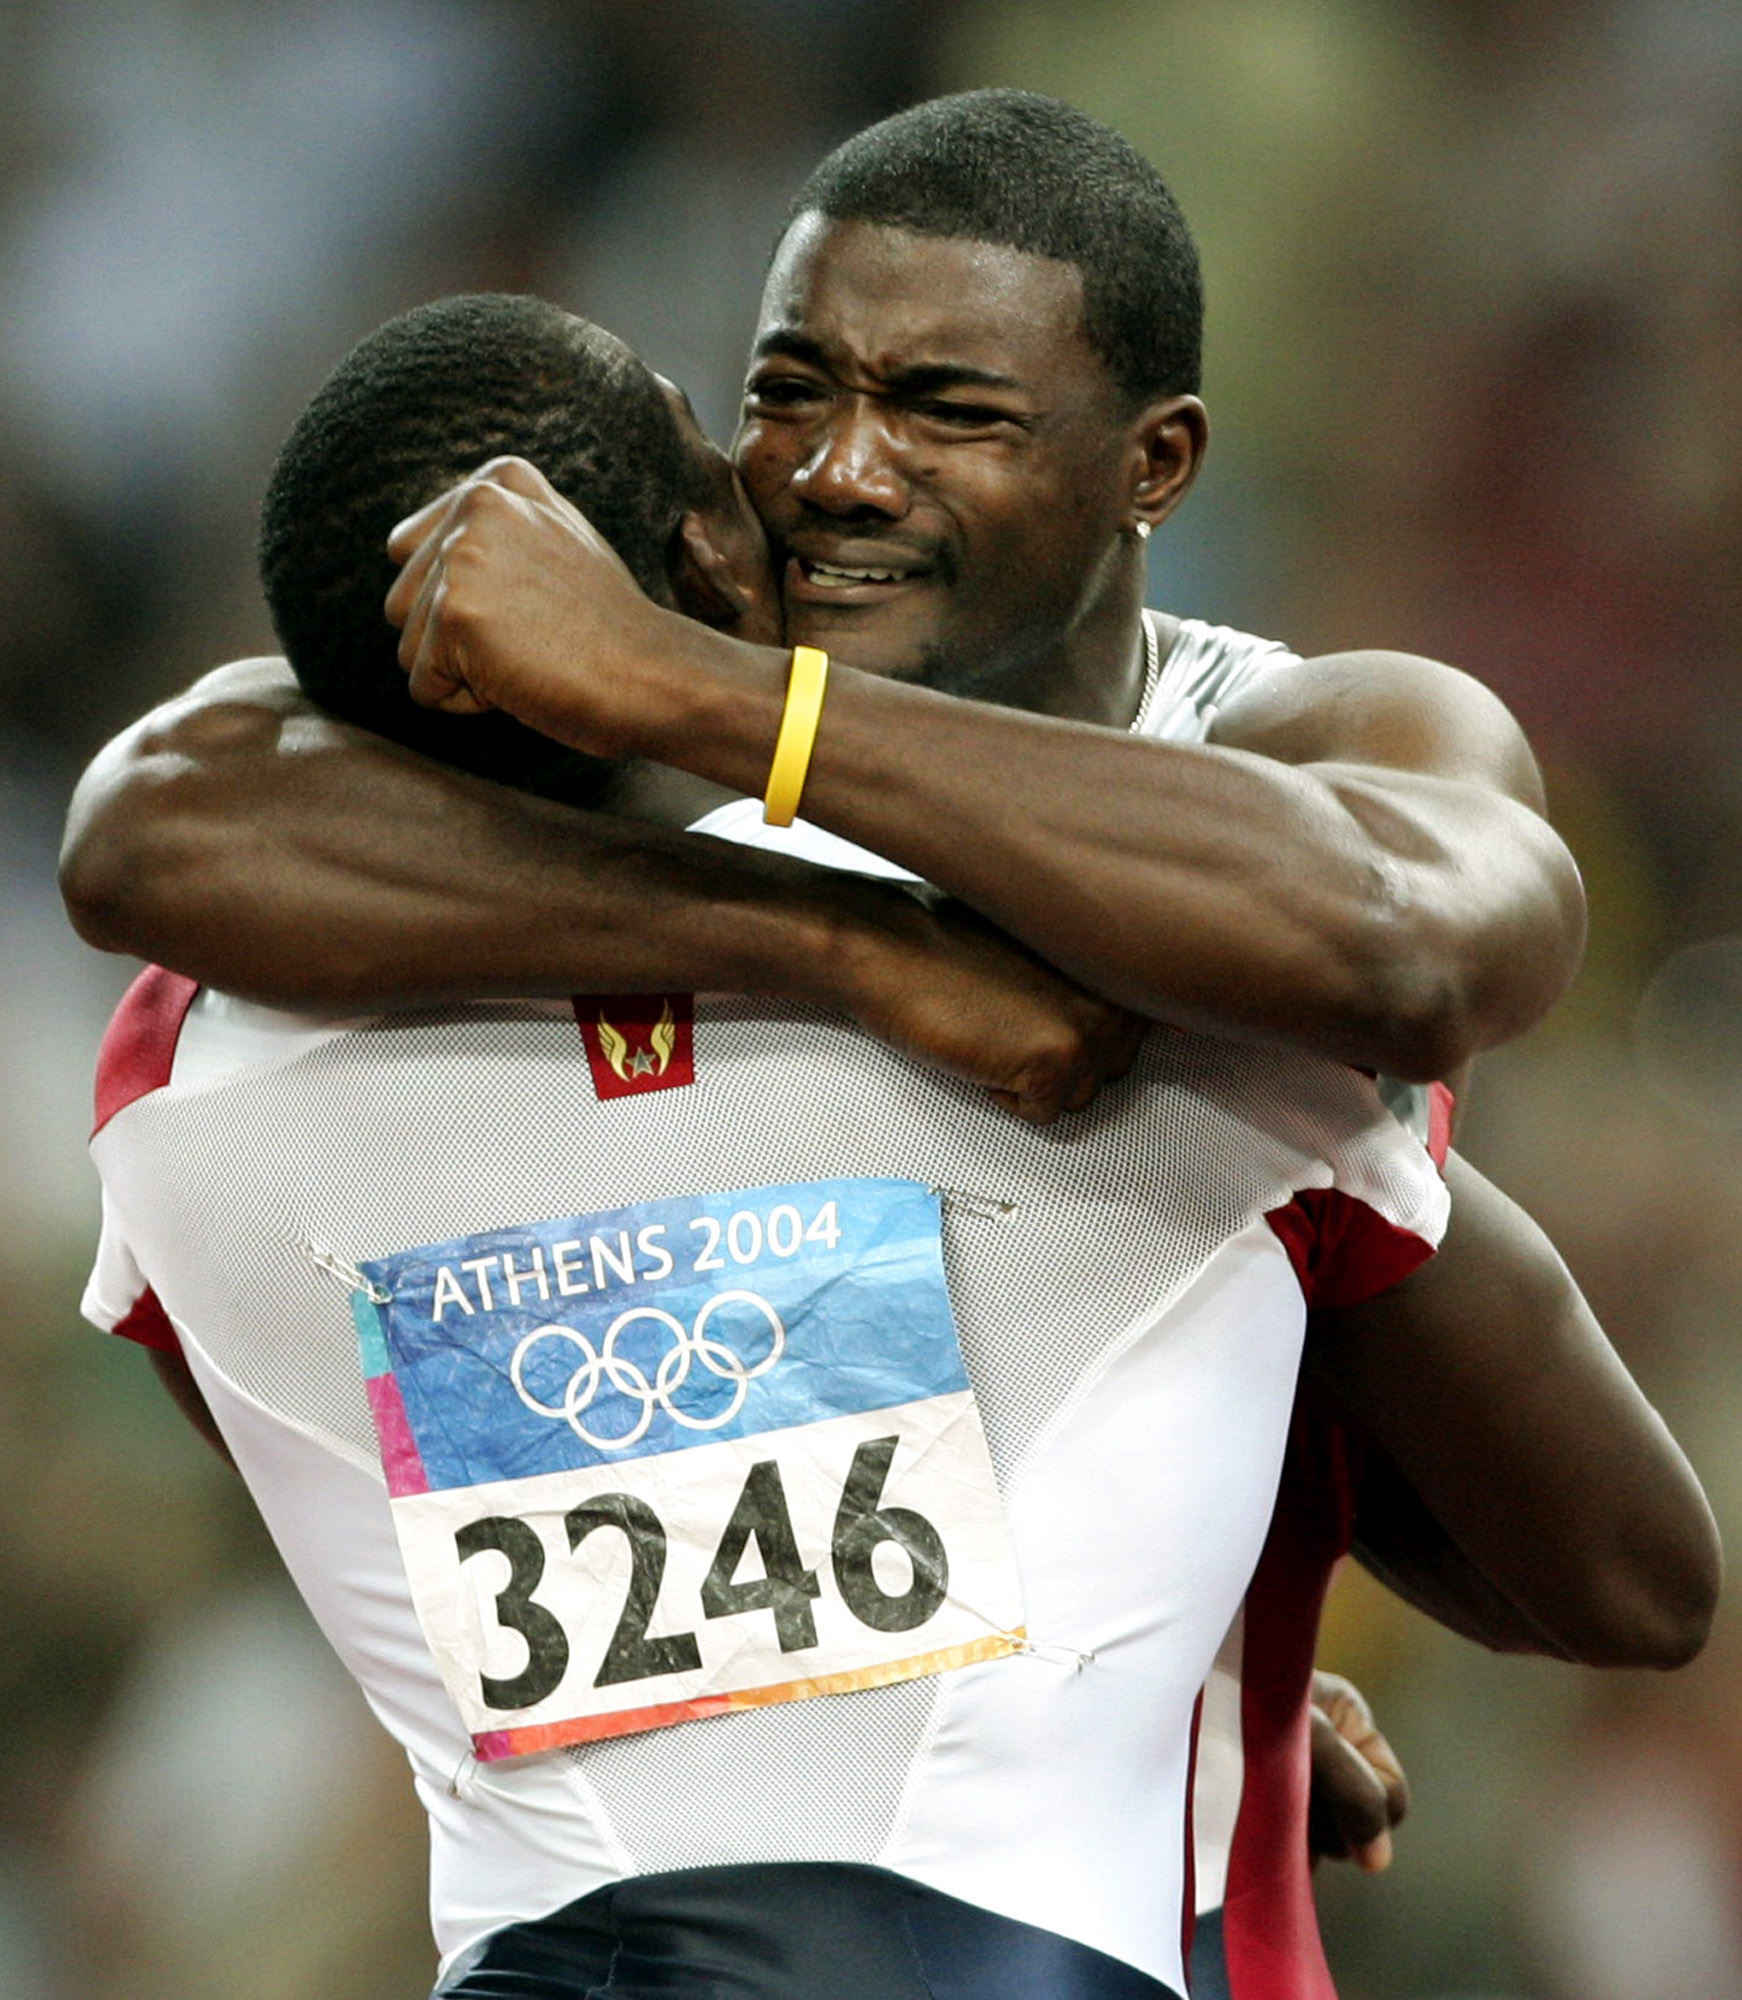 FILE - In this Aug. 22, 2004, file photo, Justin Gatlin, of the United States, is congratulated by compatriot Shawn Crawford (3246) after Gatlin won the gold medal in the 100 meters at the Olympic Stadium during the 2004 Olympic Games in Athens. Crawford